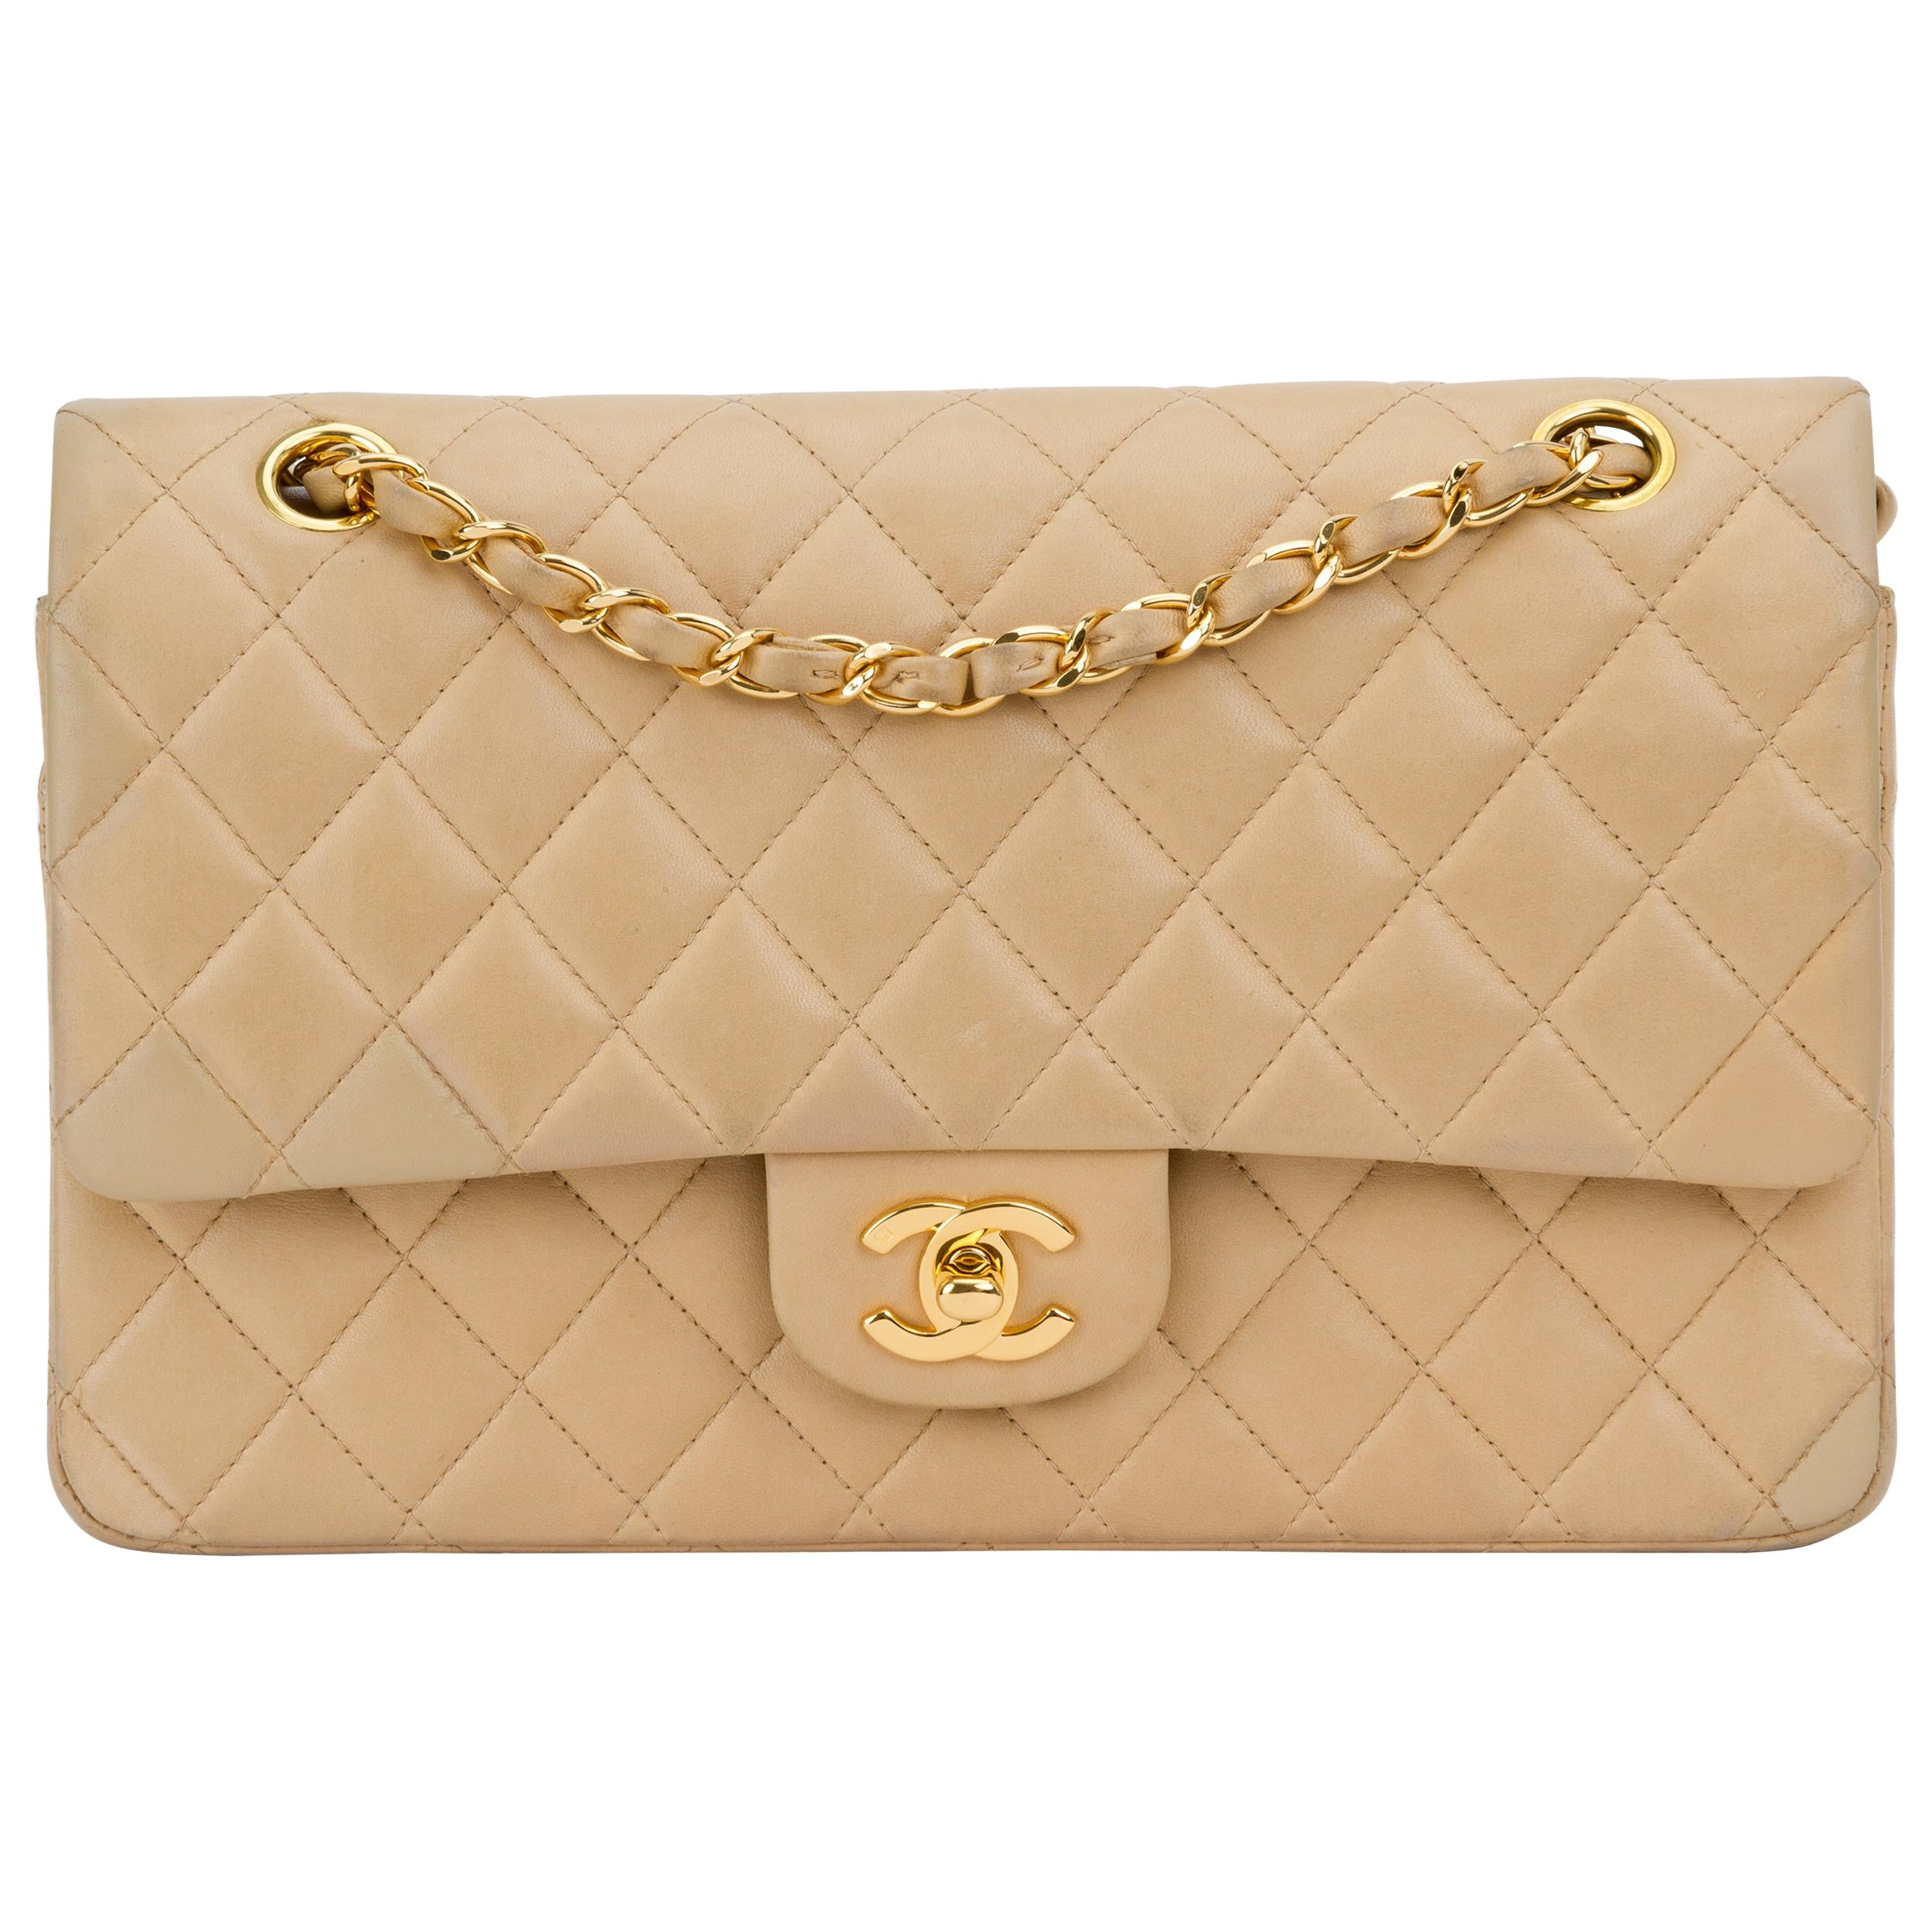 "Chanel Beige 10"" Double Flap Gold Hardware"